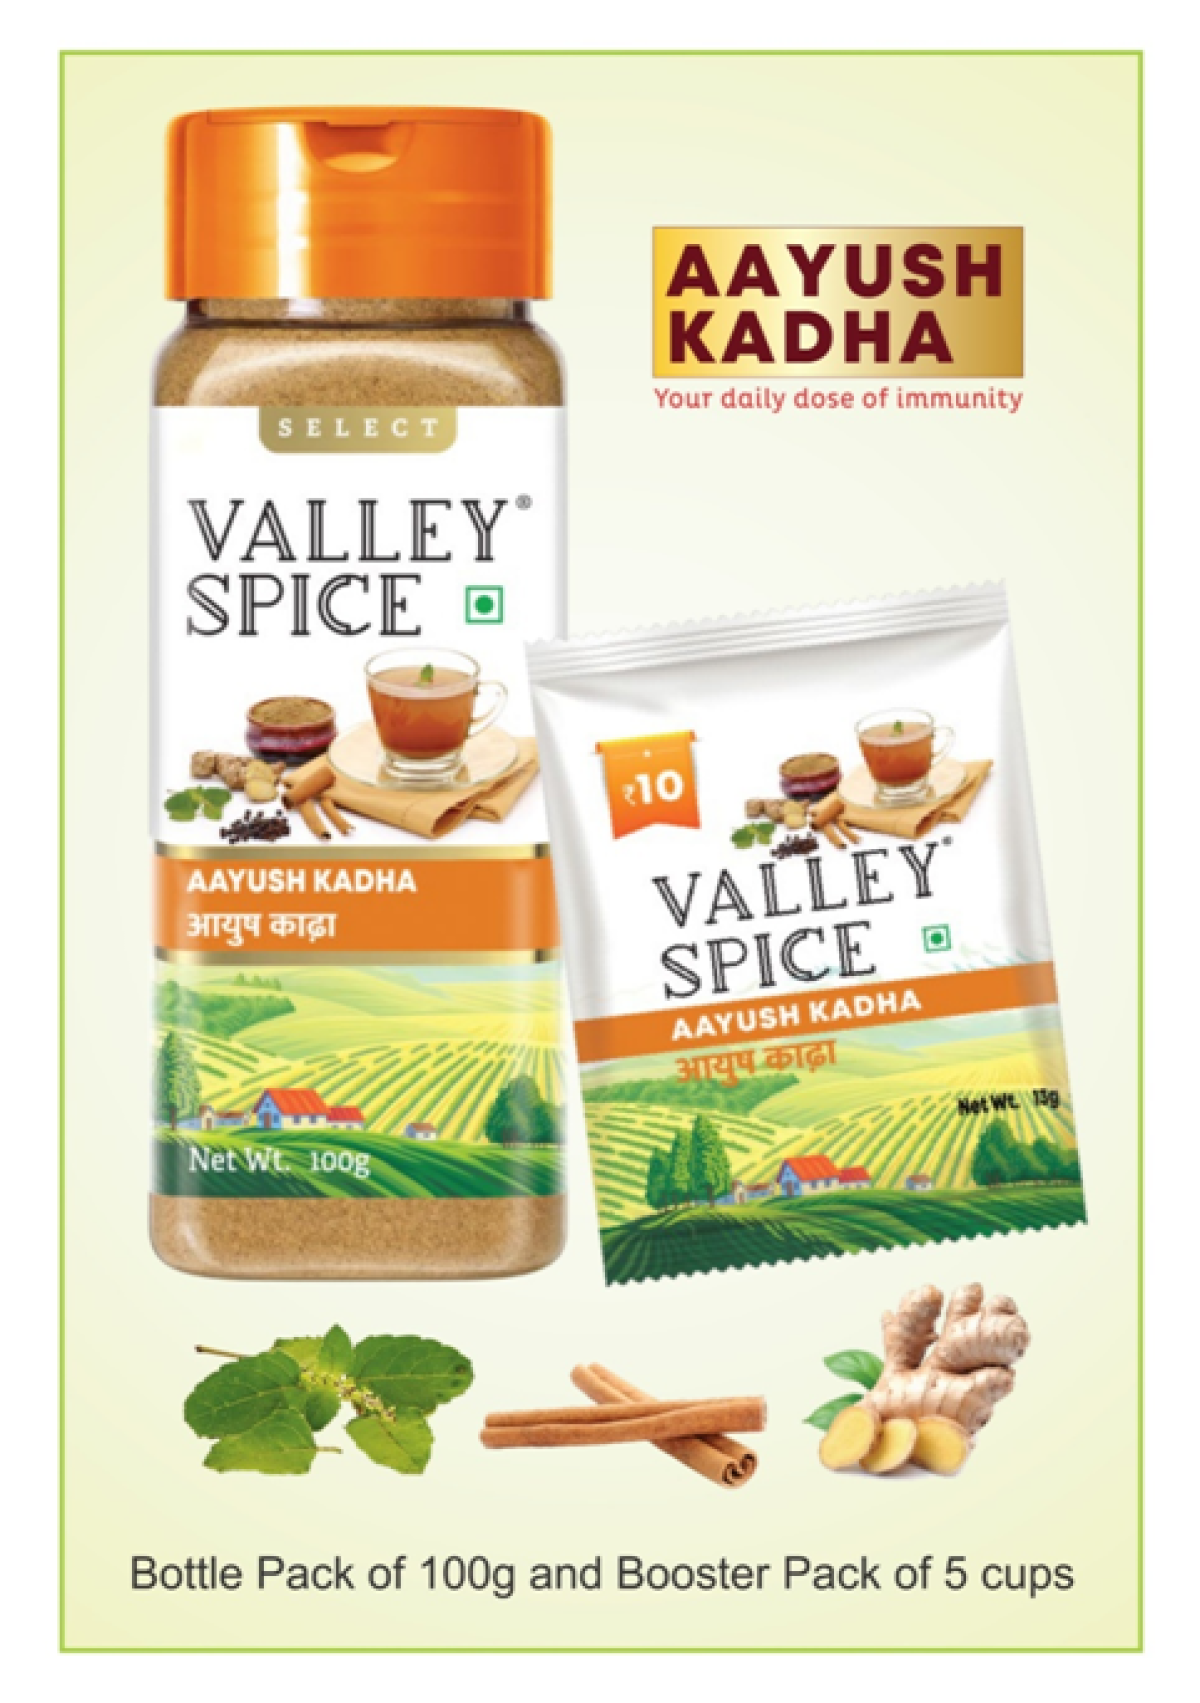 Jain Farm Fresh launches Aayush Kadha